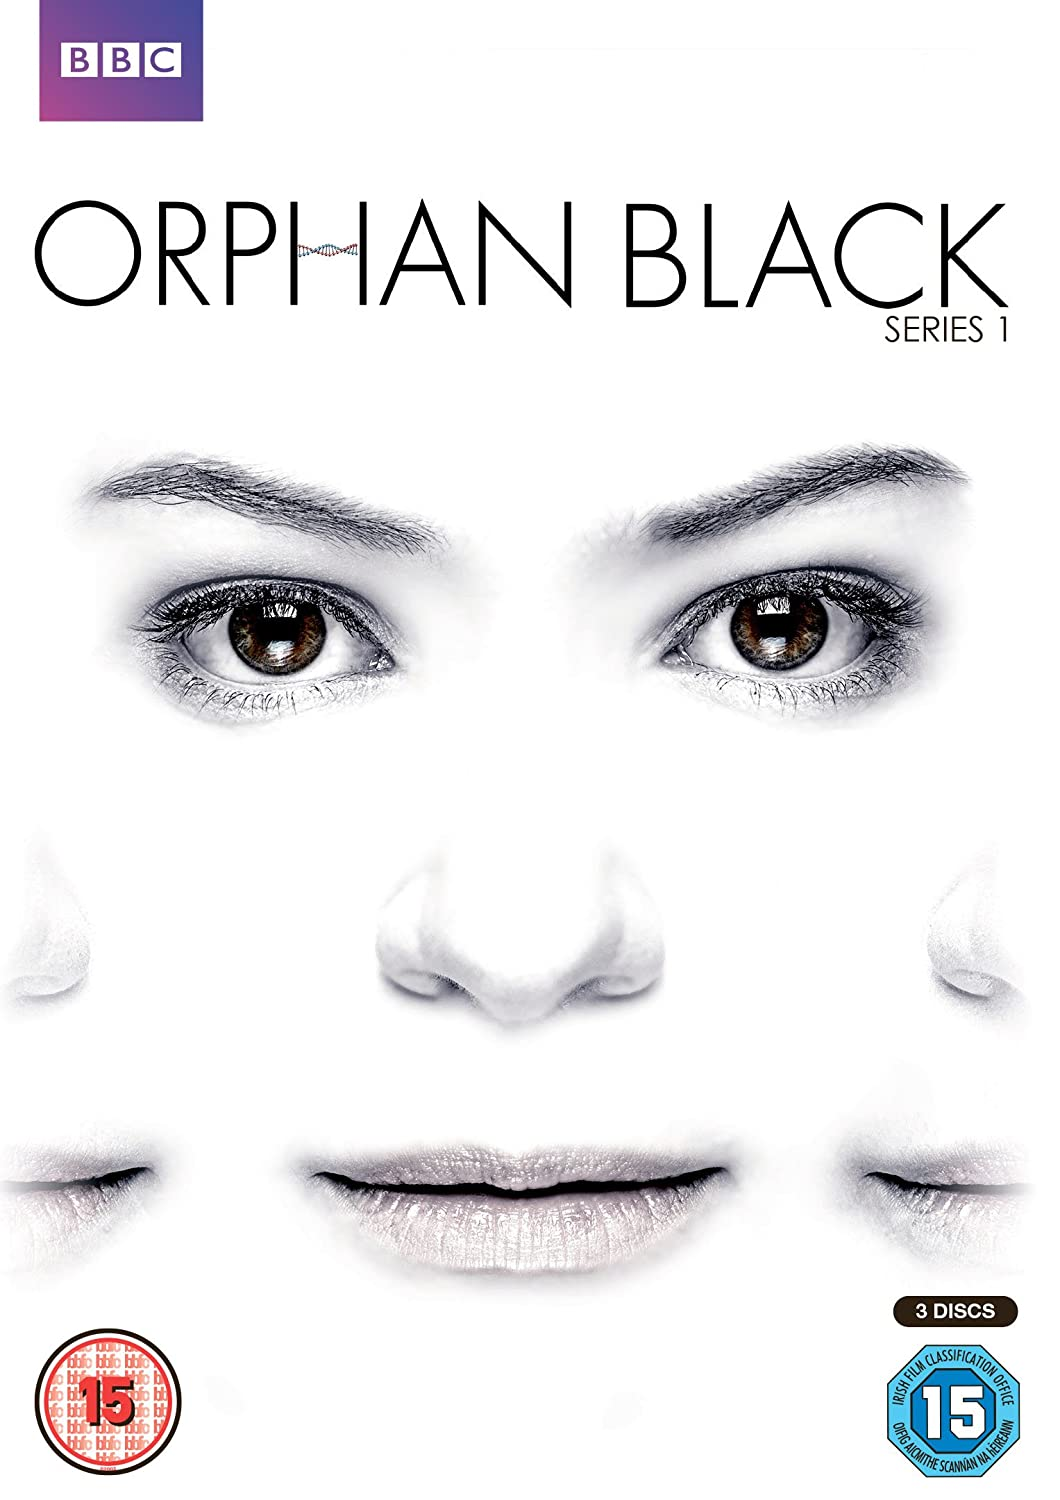 Orphan black t shirt uk - Orphan Black Series One Dvd Amazon Co Uk Tatiana Maslany Dylan Bruce Jordan Gavaris Kevin Hanchard Michael Mando Maria Doyle Kennedy John Fawcett